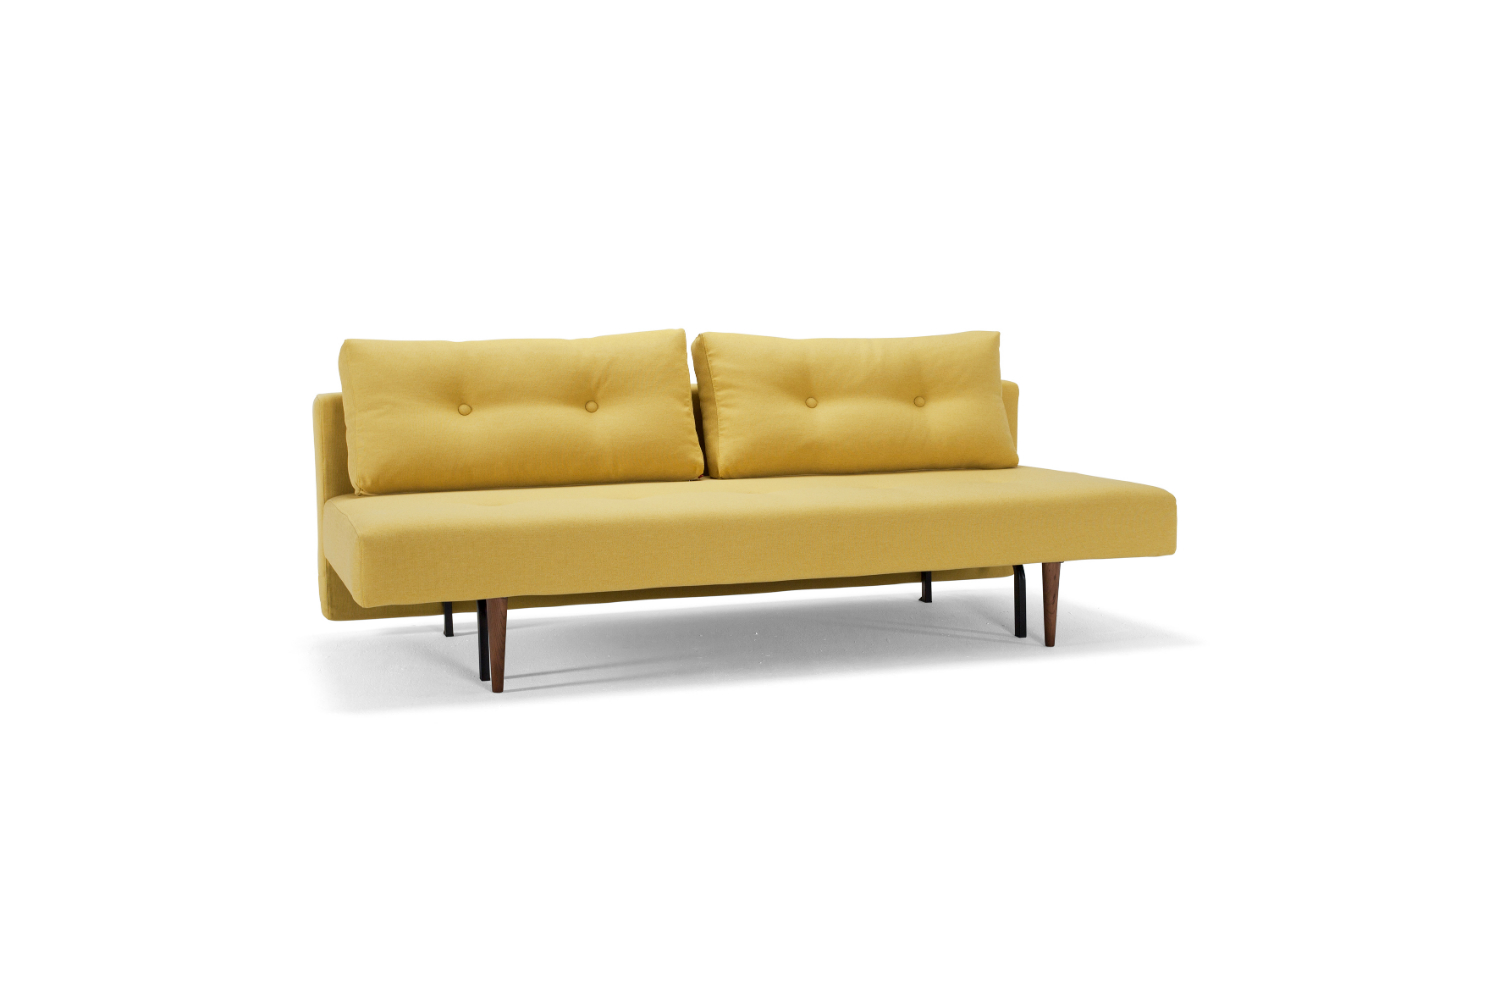 Istyle 2015 recast 554 softmustard flower sofa bed sofa for Sofa bed australia